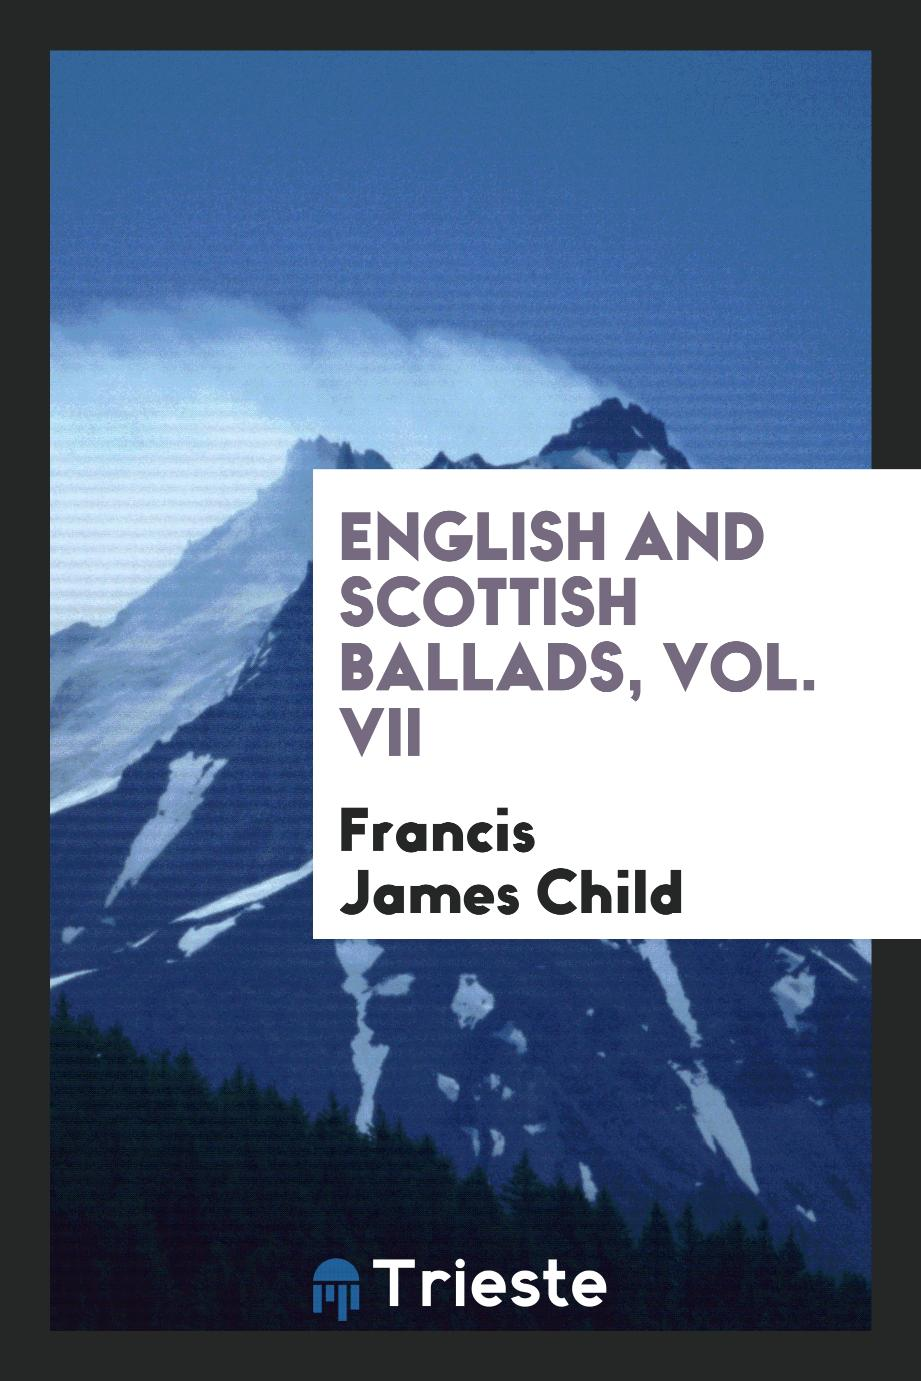 English and Scottish Ballads, Vol. VII